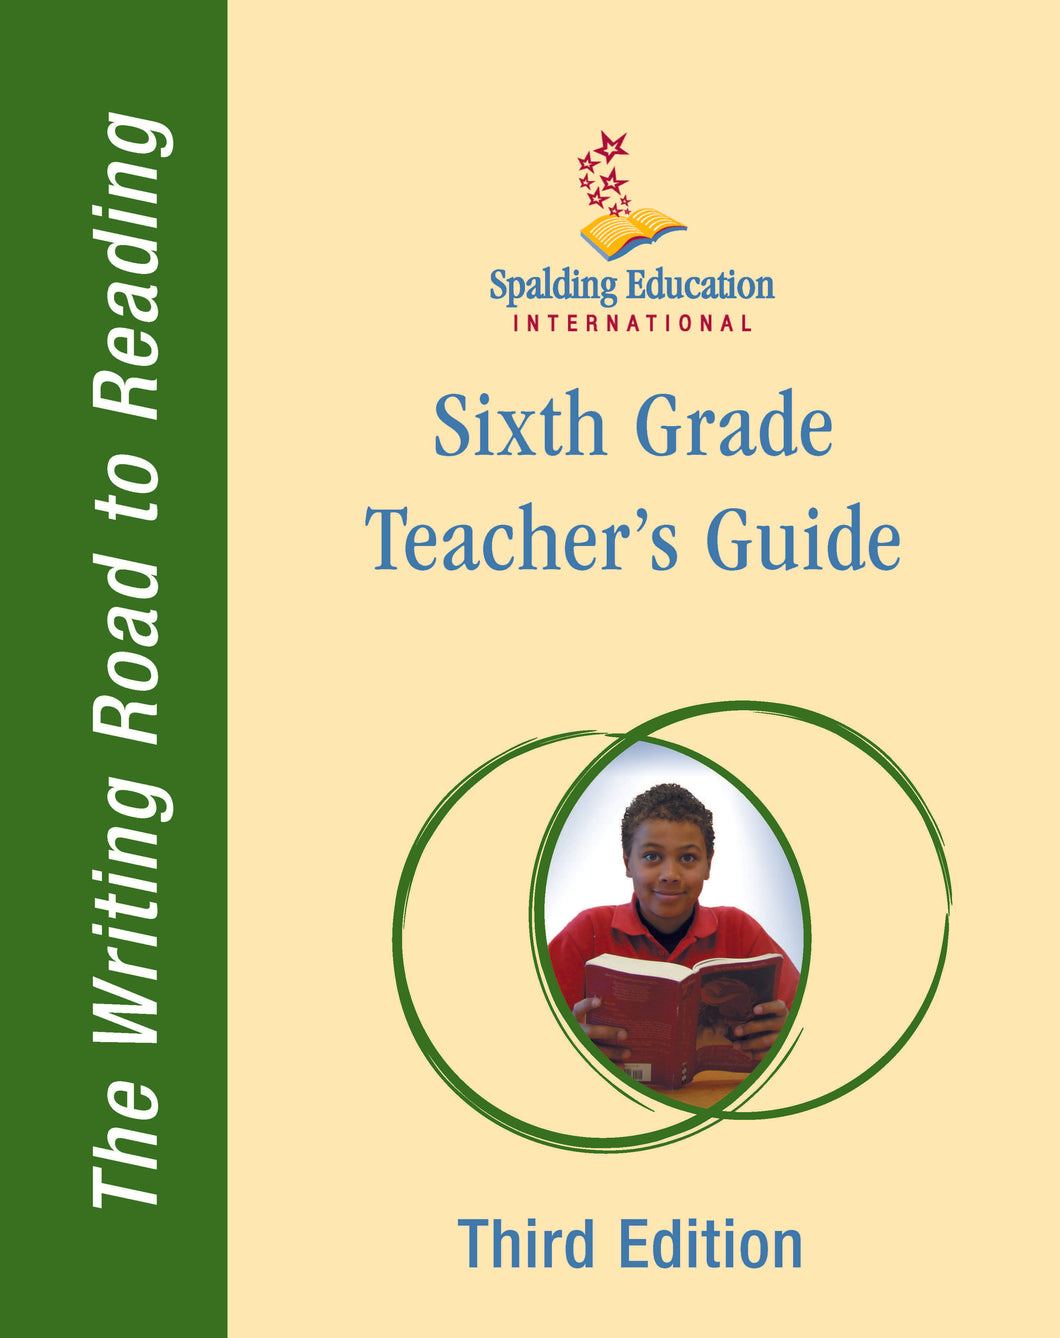 CTE6 Classic Teacher's Guide Ebook - Sixth Grade